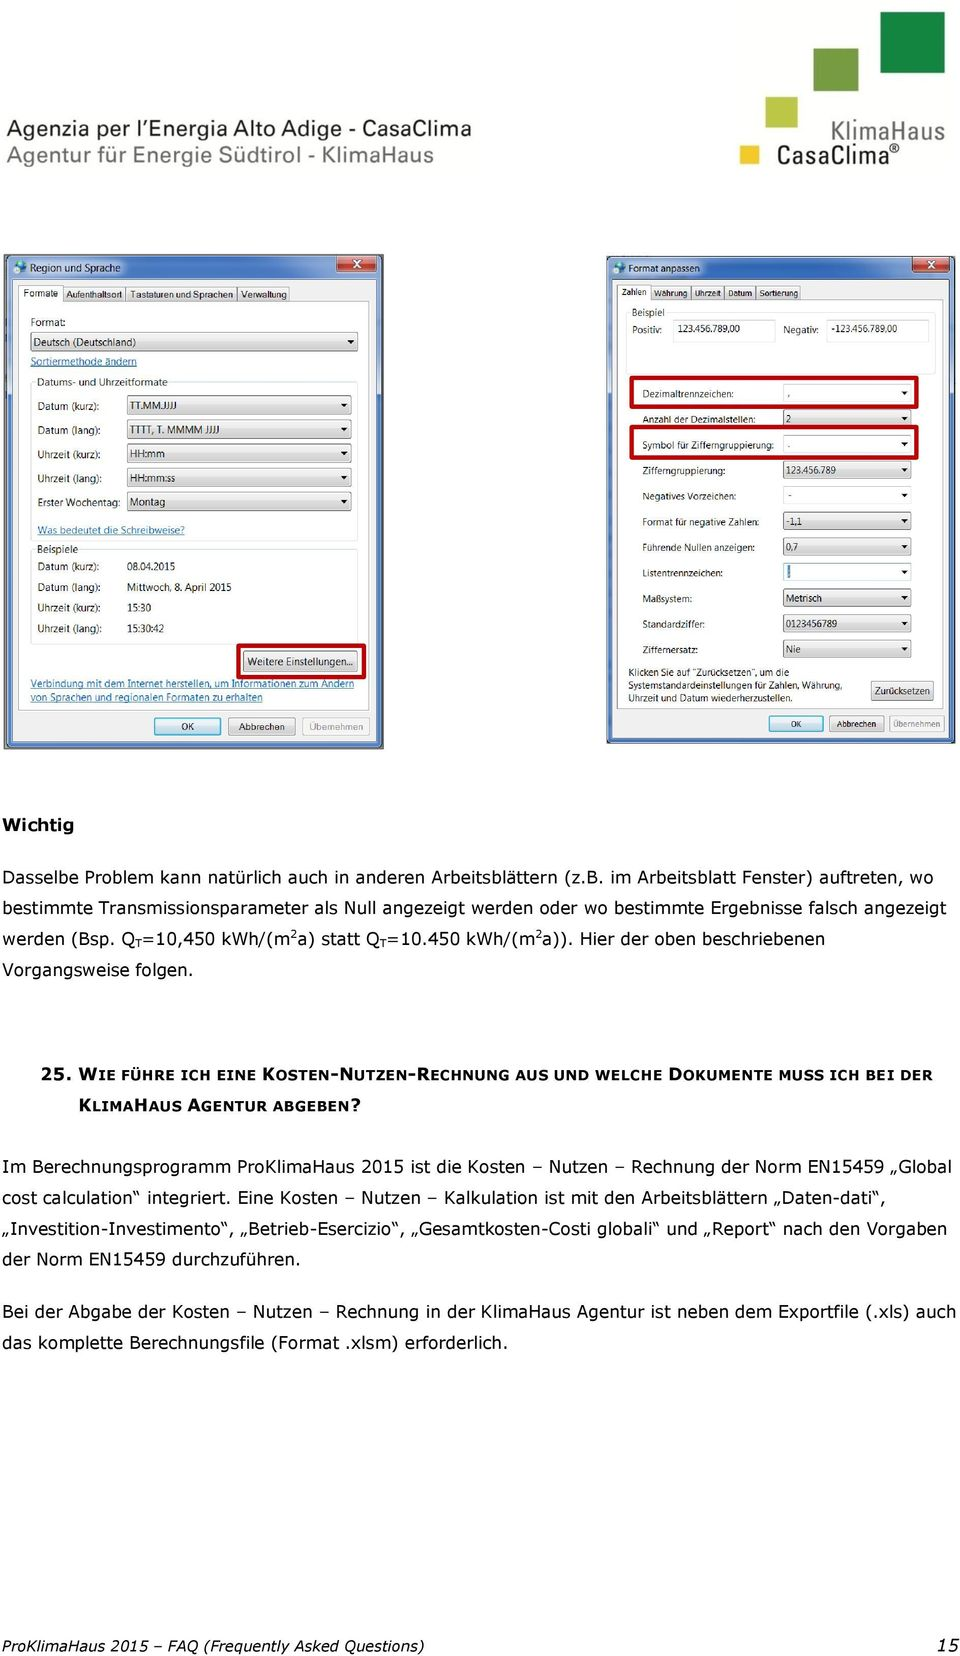 PROKLIMAHAUS 2015 FAQ (Frequently Asked Questions) - PDF